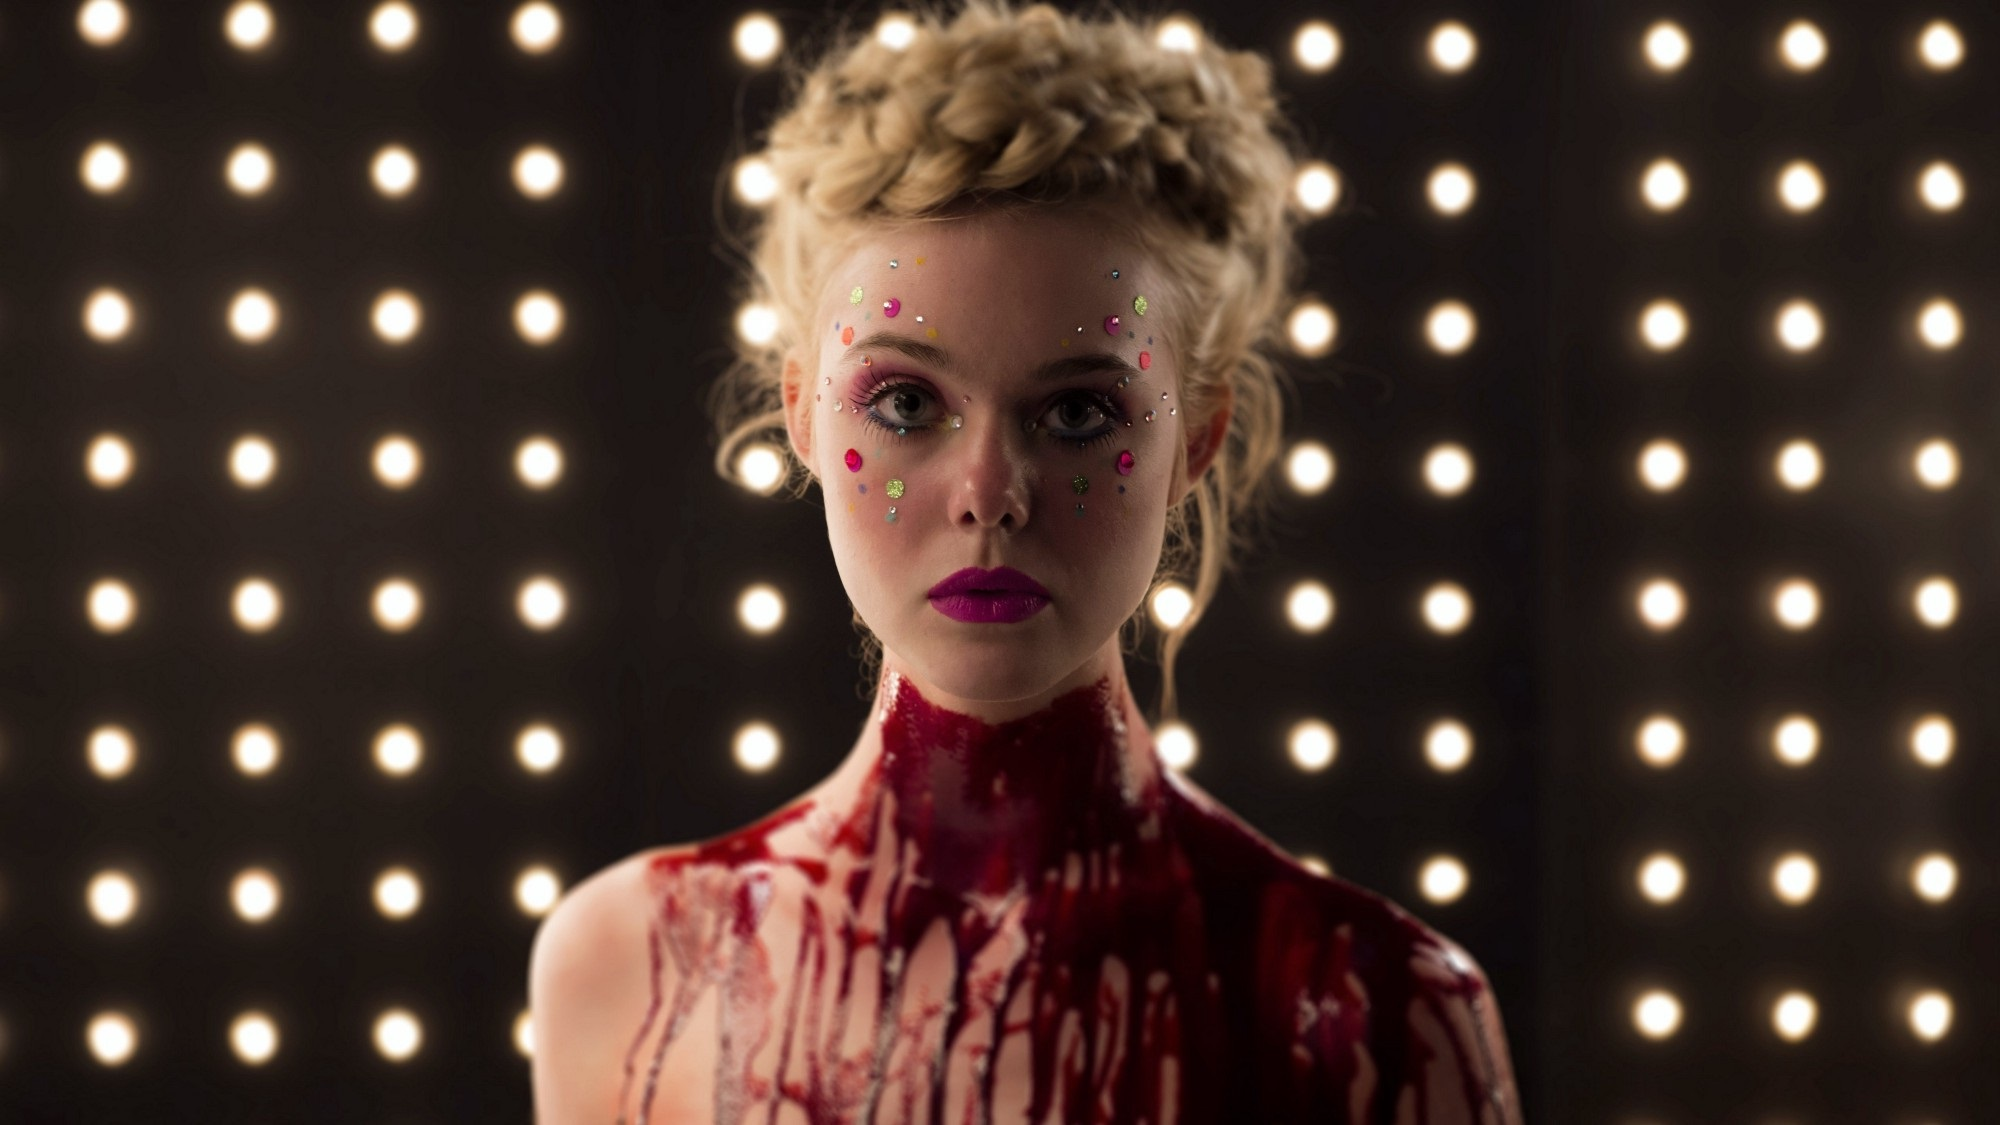 Elle Fanning in The Neon Demon (2016)